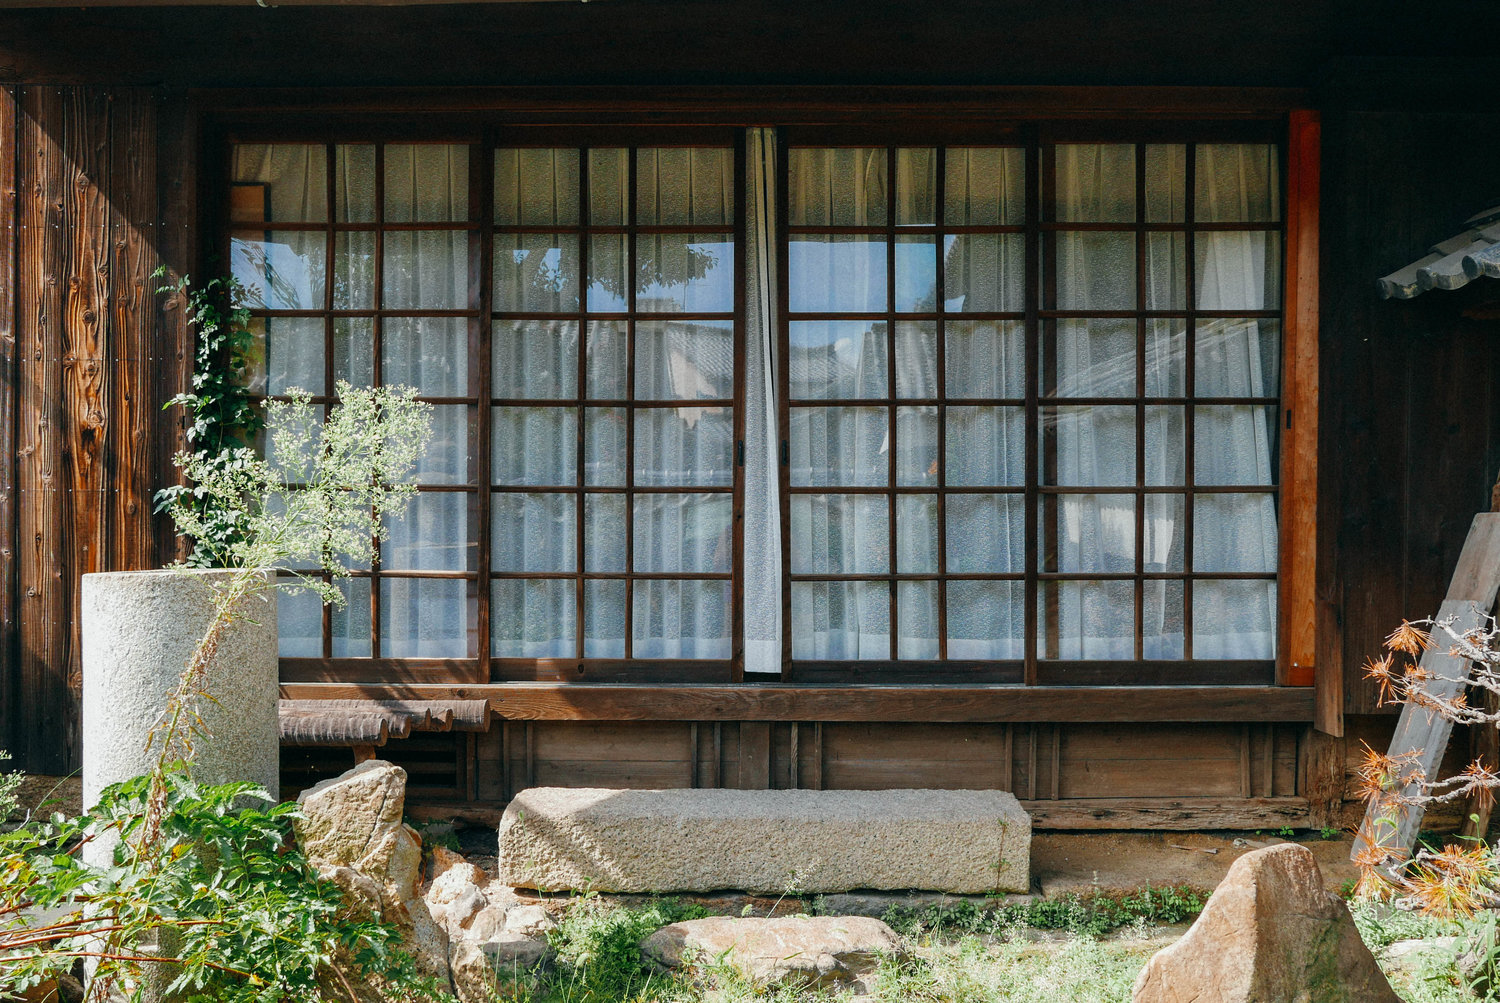 A Japanese Guesthouse in Naoshima